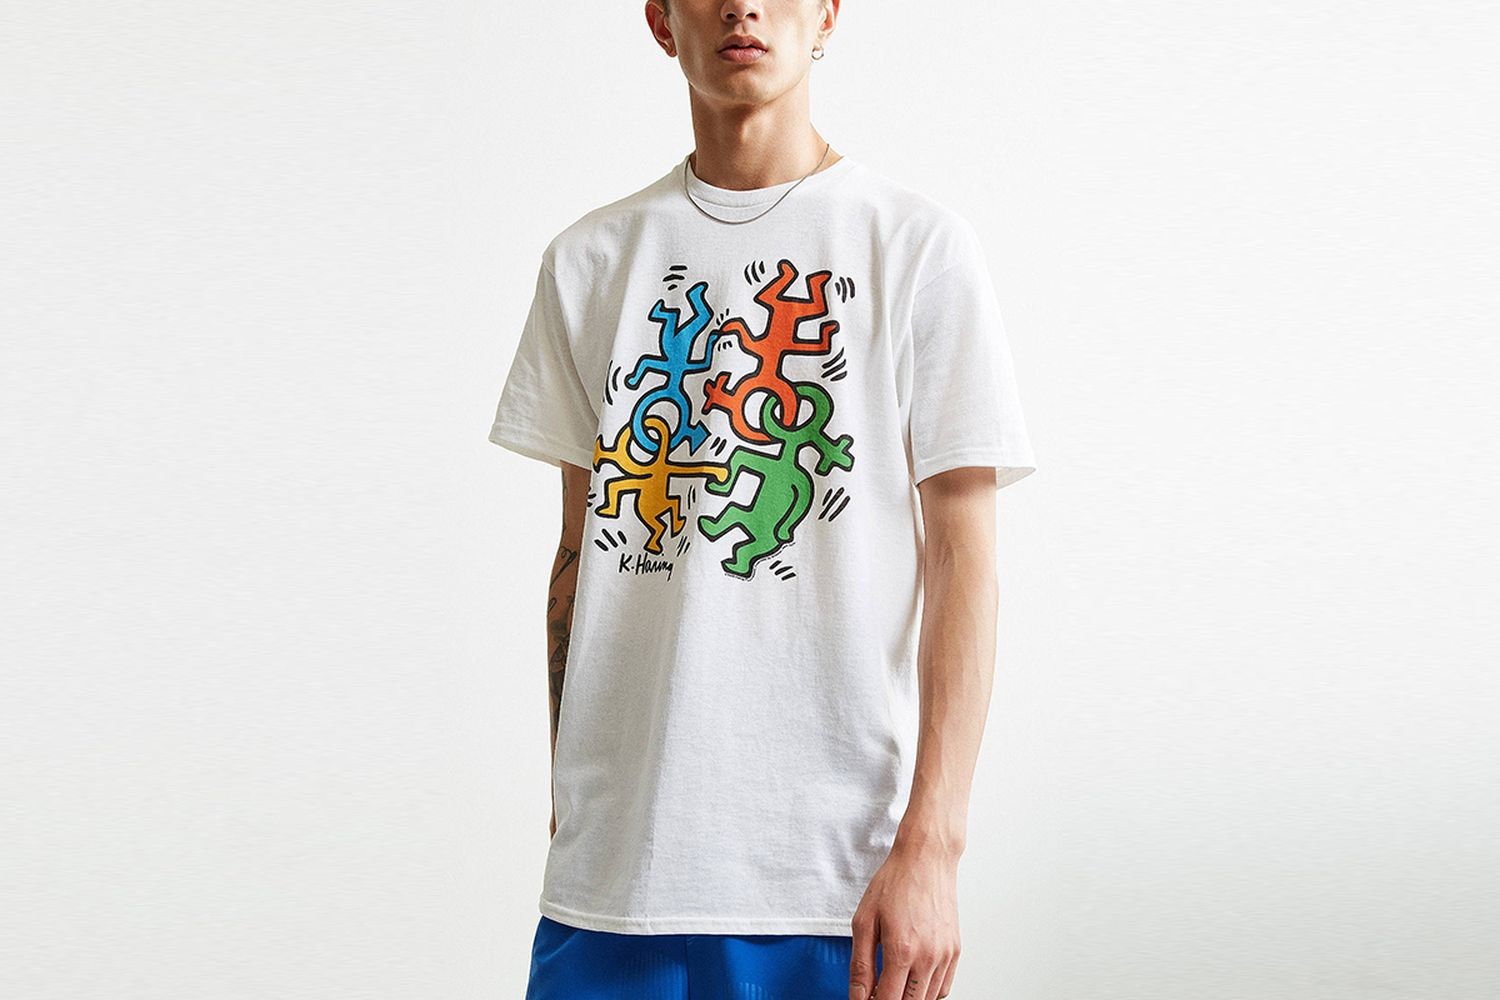 Equality Keith Haring T-Shirt